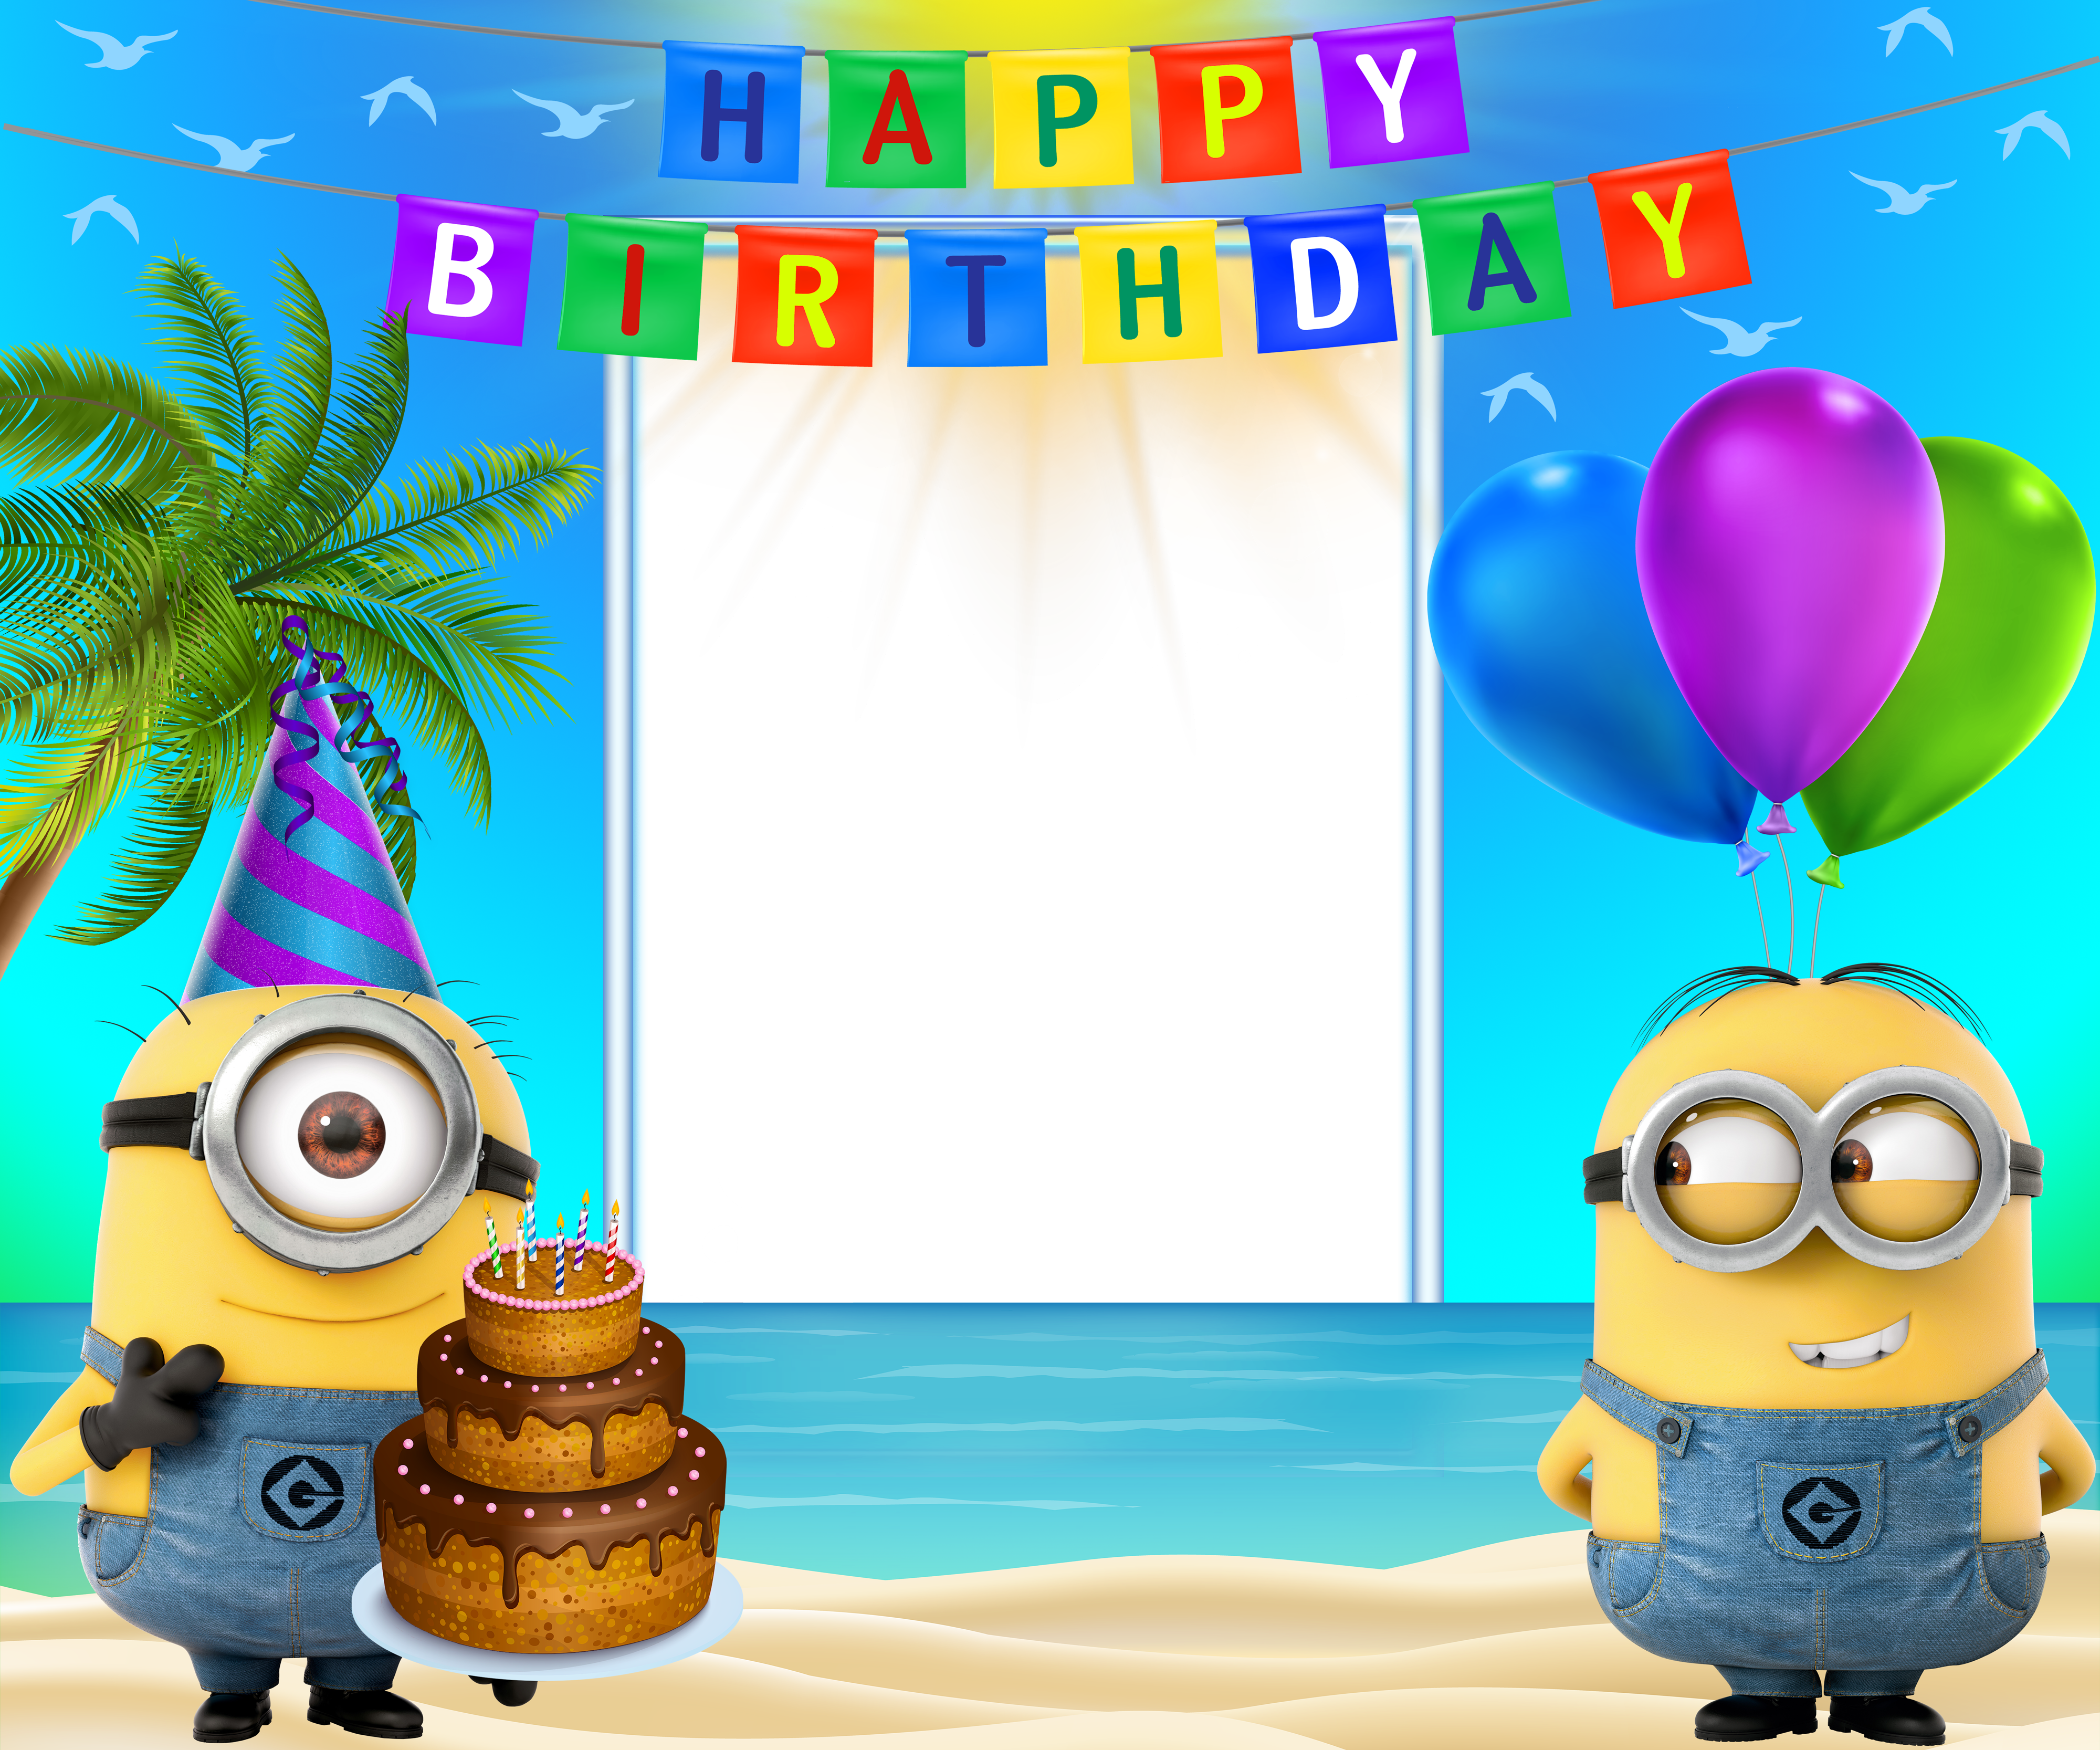 Happy Birthday Transparent Frame with Minions Gallery 4000x3333